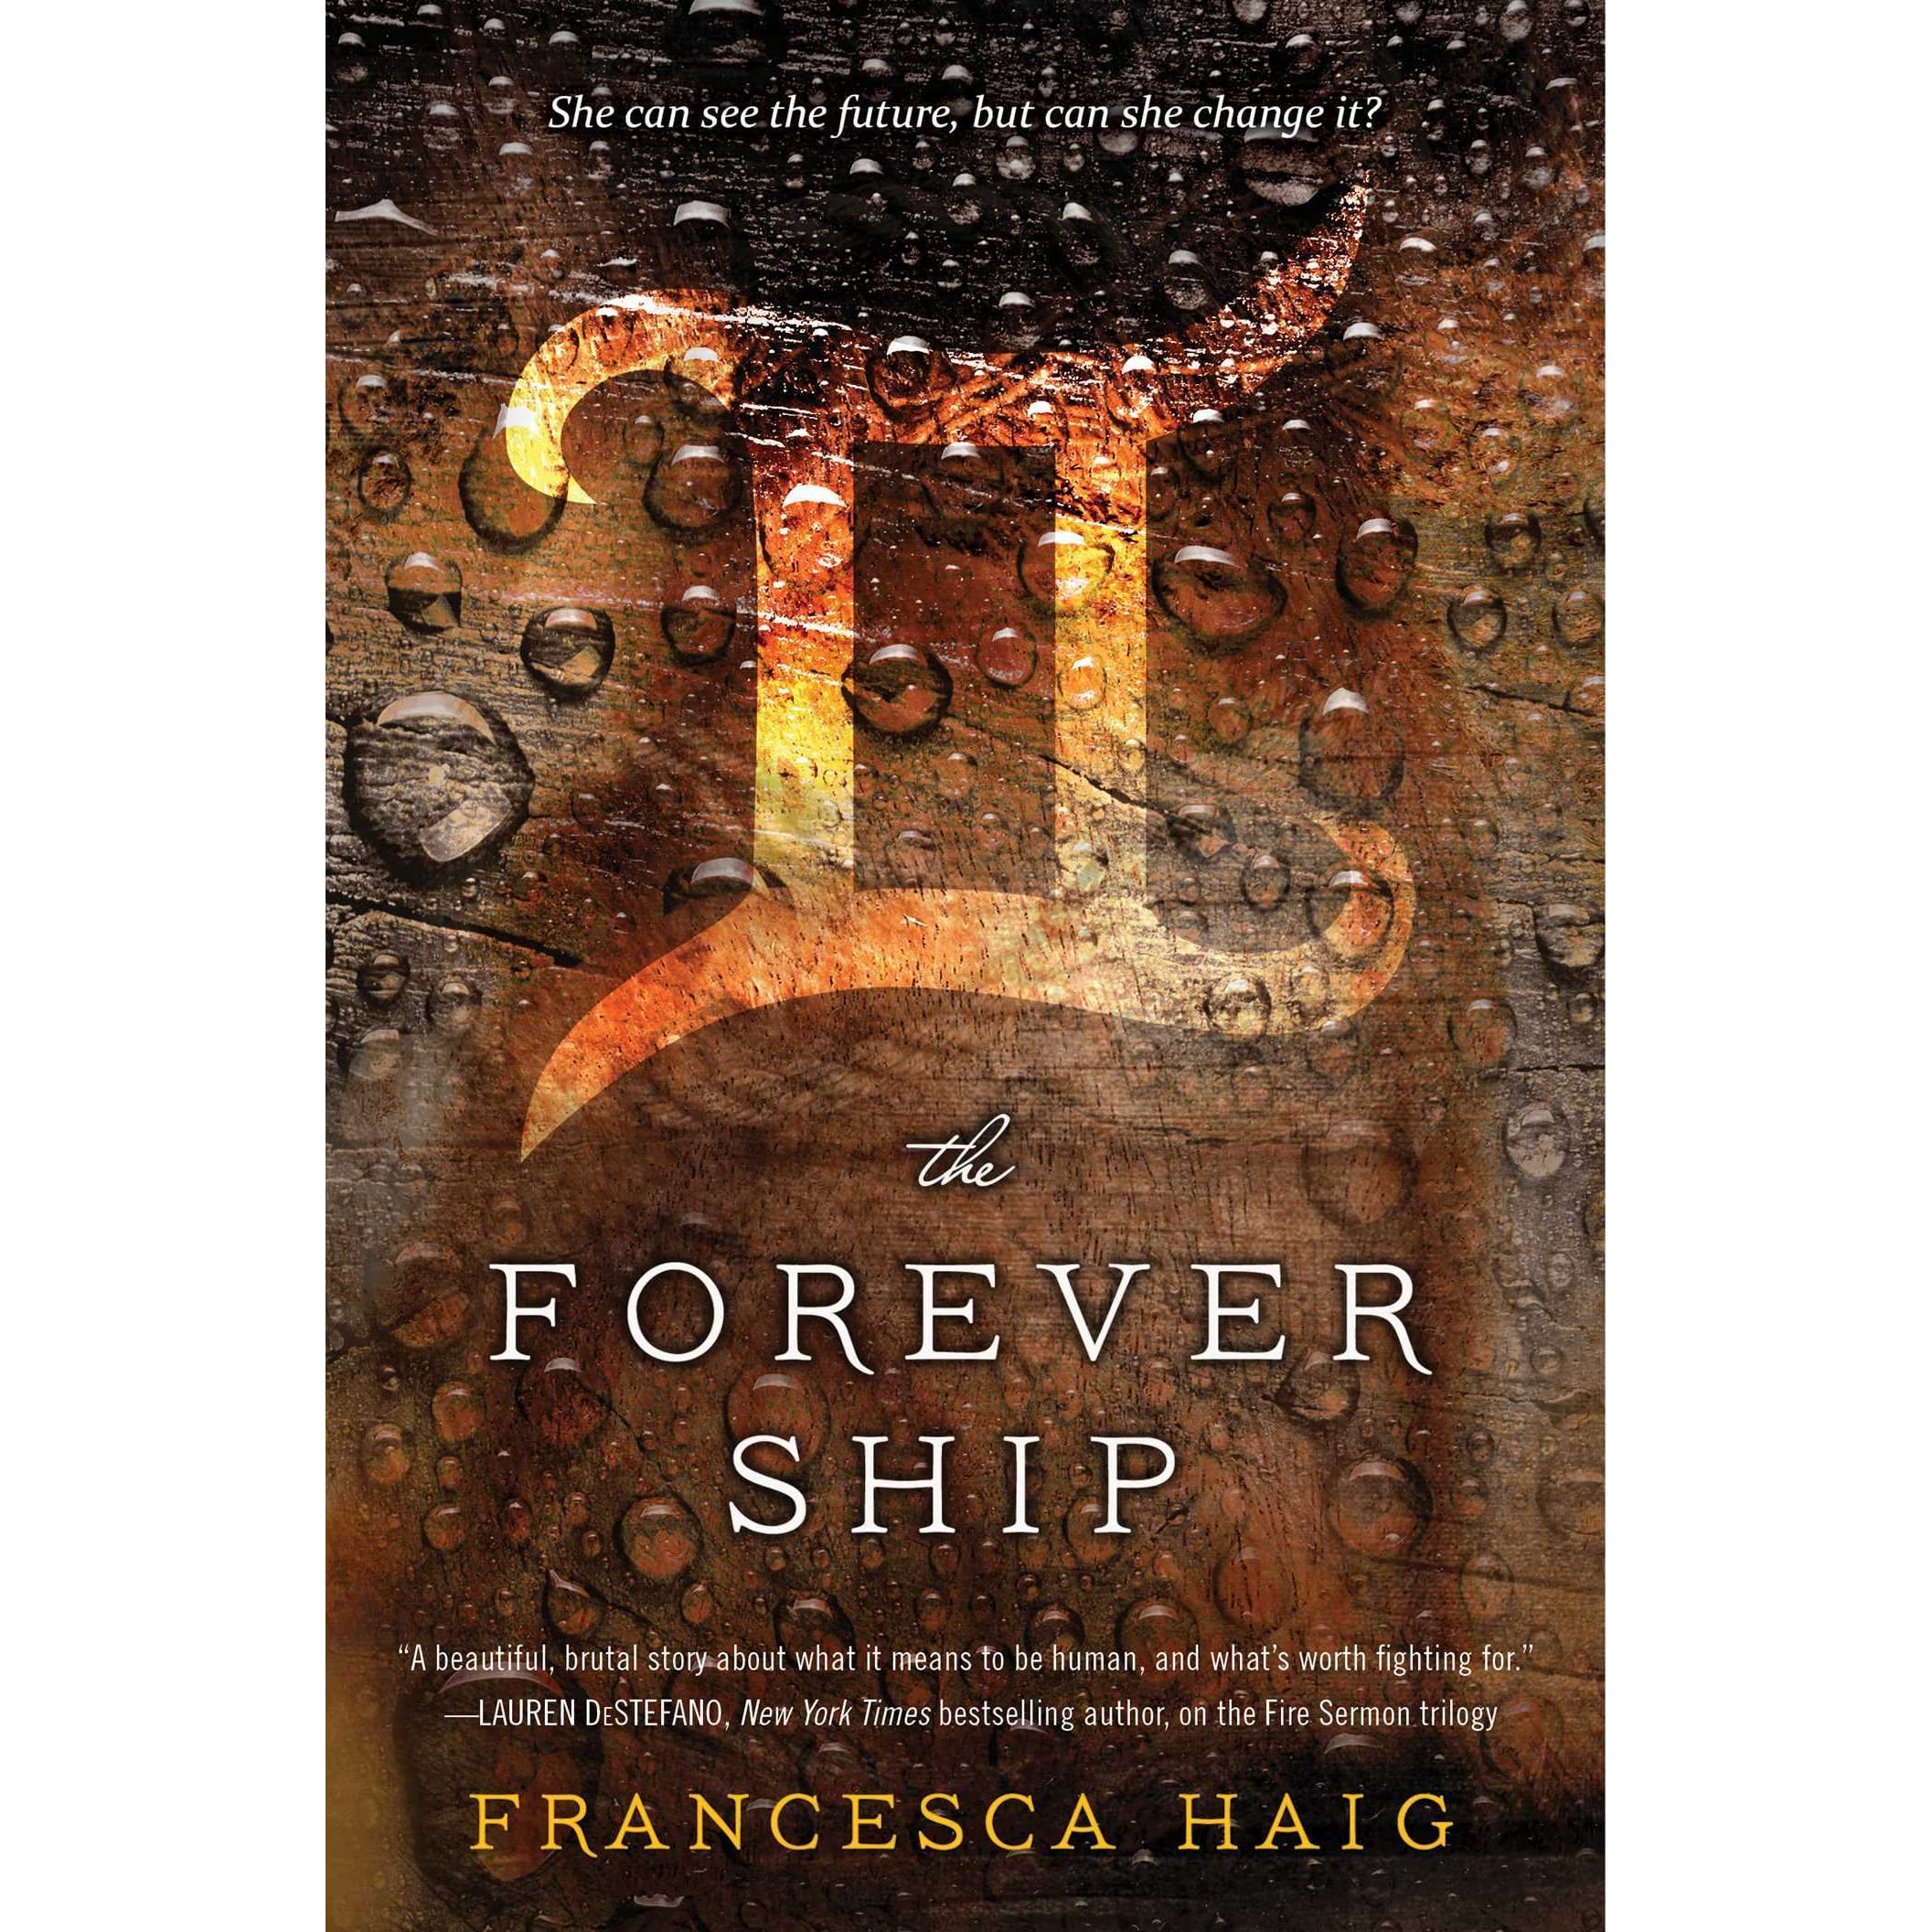 The Forever Ship (The Fire Sermon, #3) by Francesca Haig